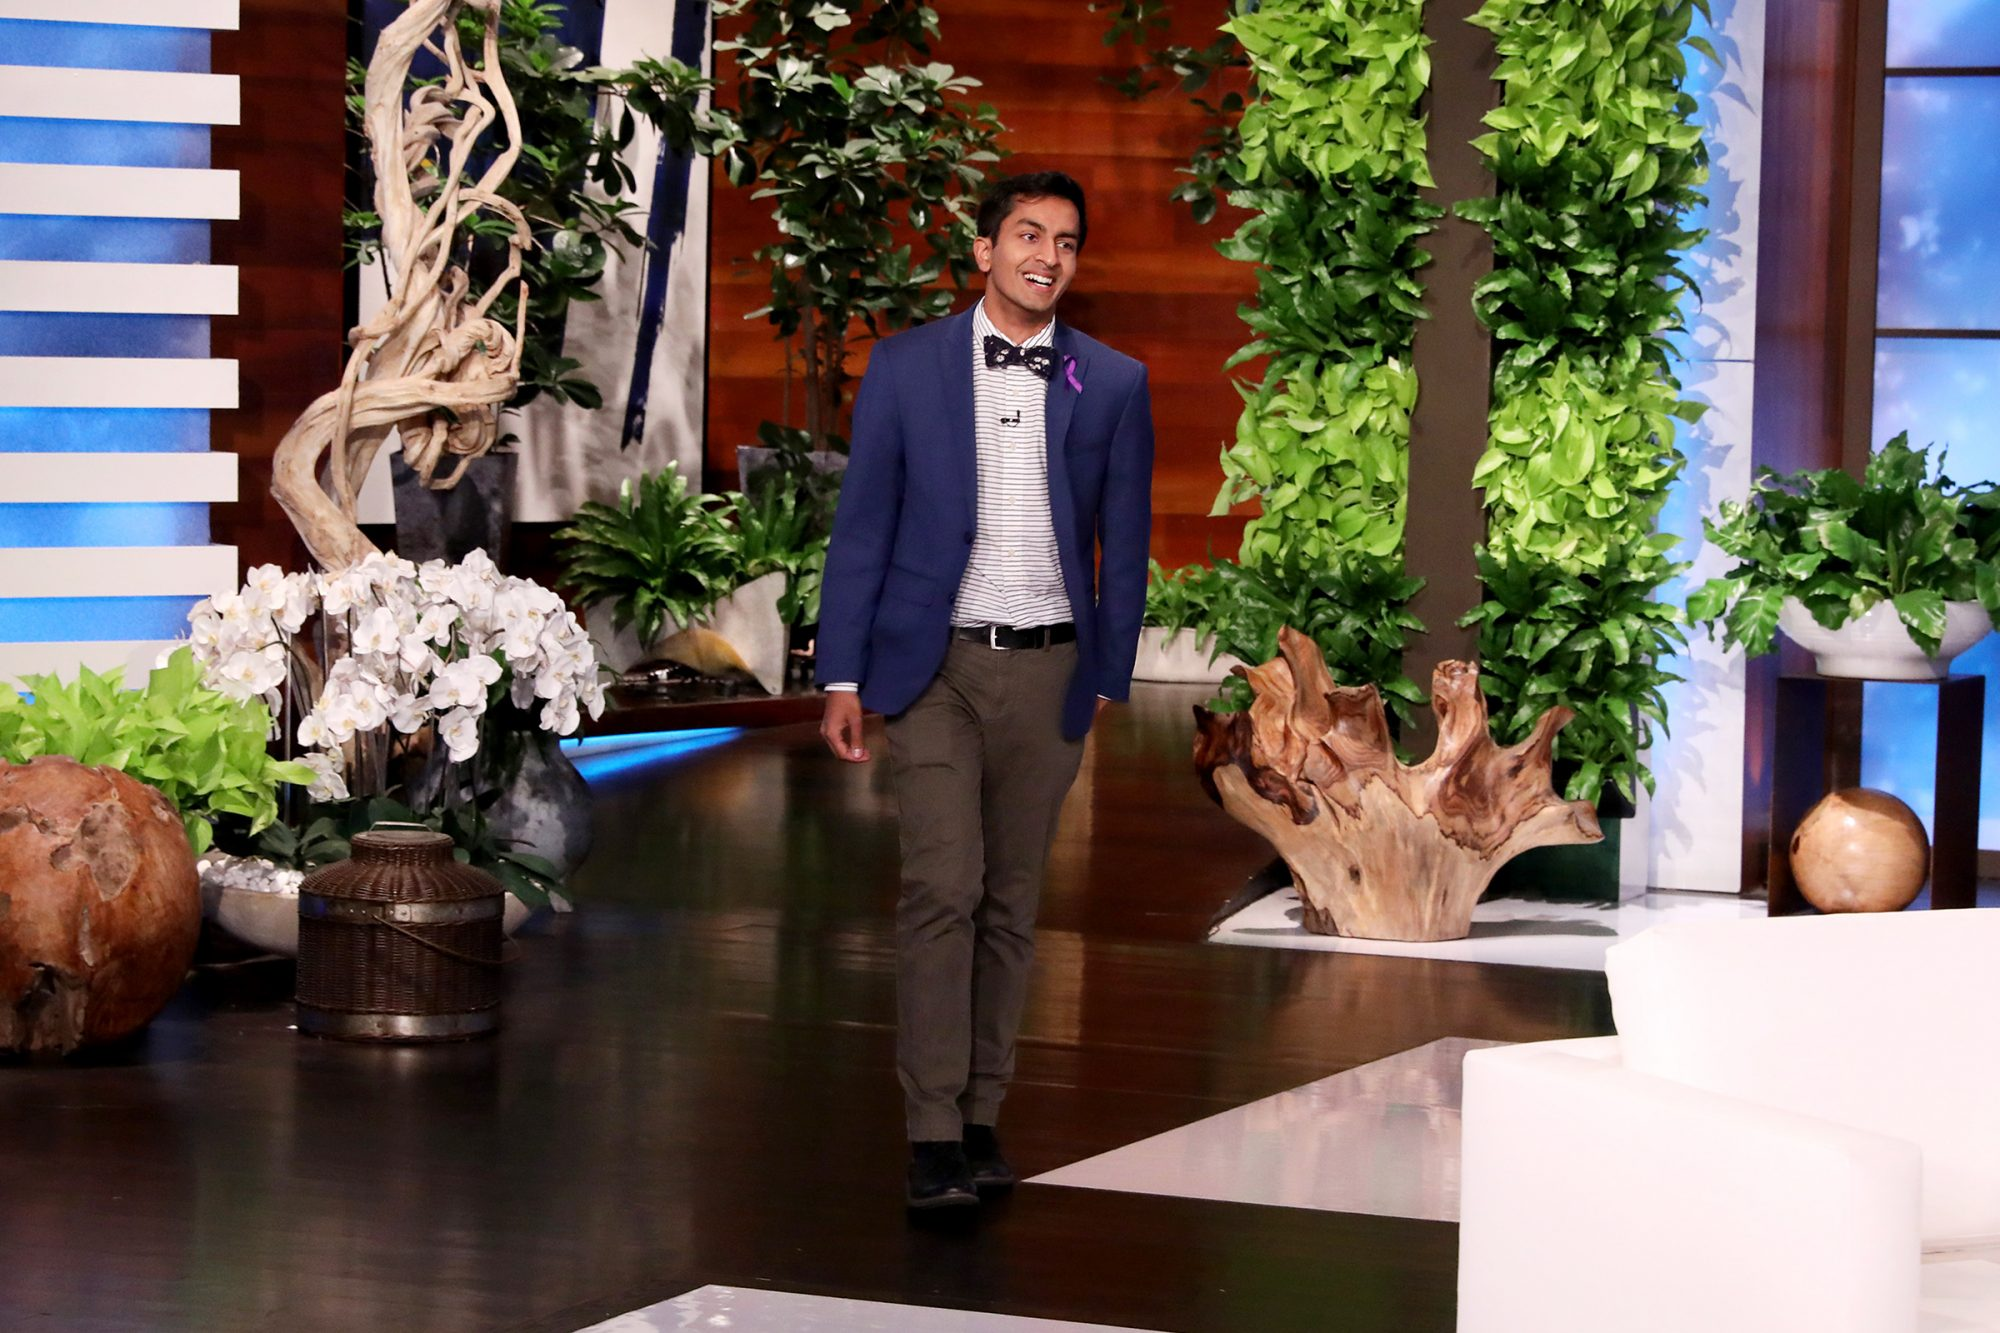 """Jeopardy!"" contestant Dhruv Gaur from Gainesville, GA stops by ""The Ellen DeGeneres Show"" on Thursday, November 14th for his first appearance after making the beloved quiz show host, Alex Trebek, emotional on Monday night's episode, which went viral."